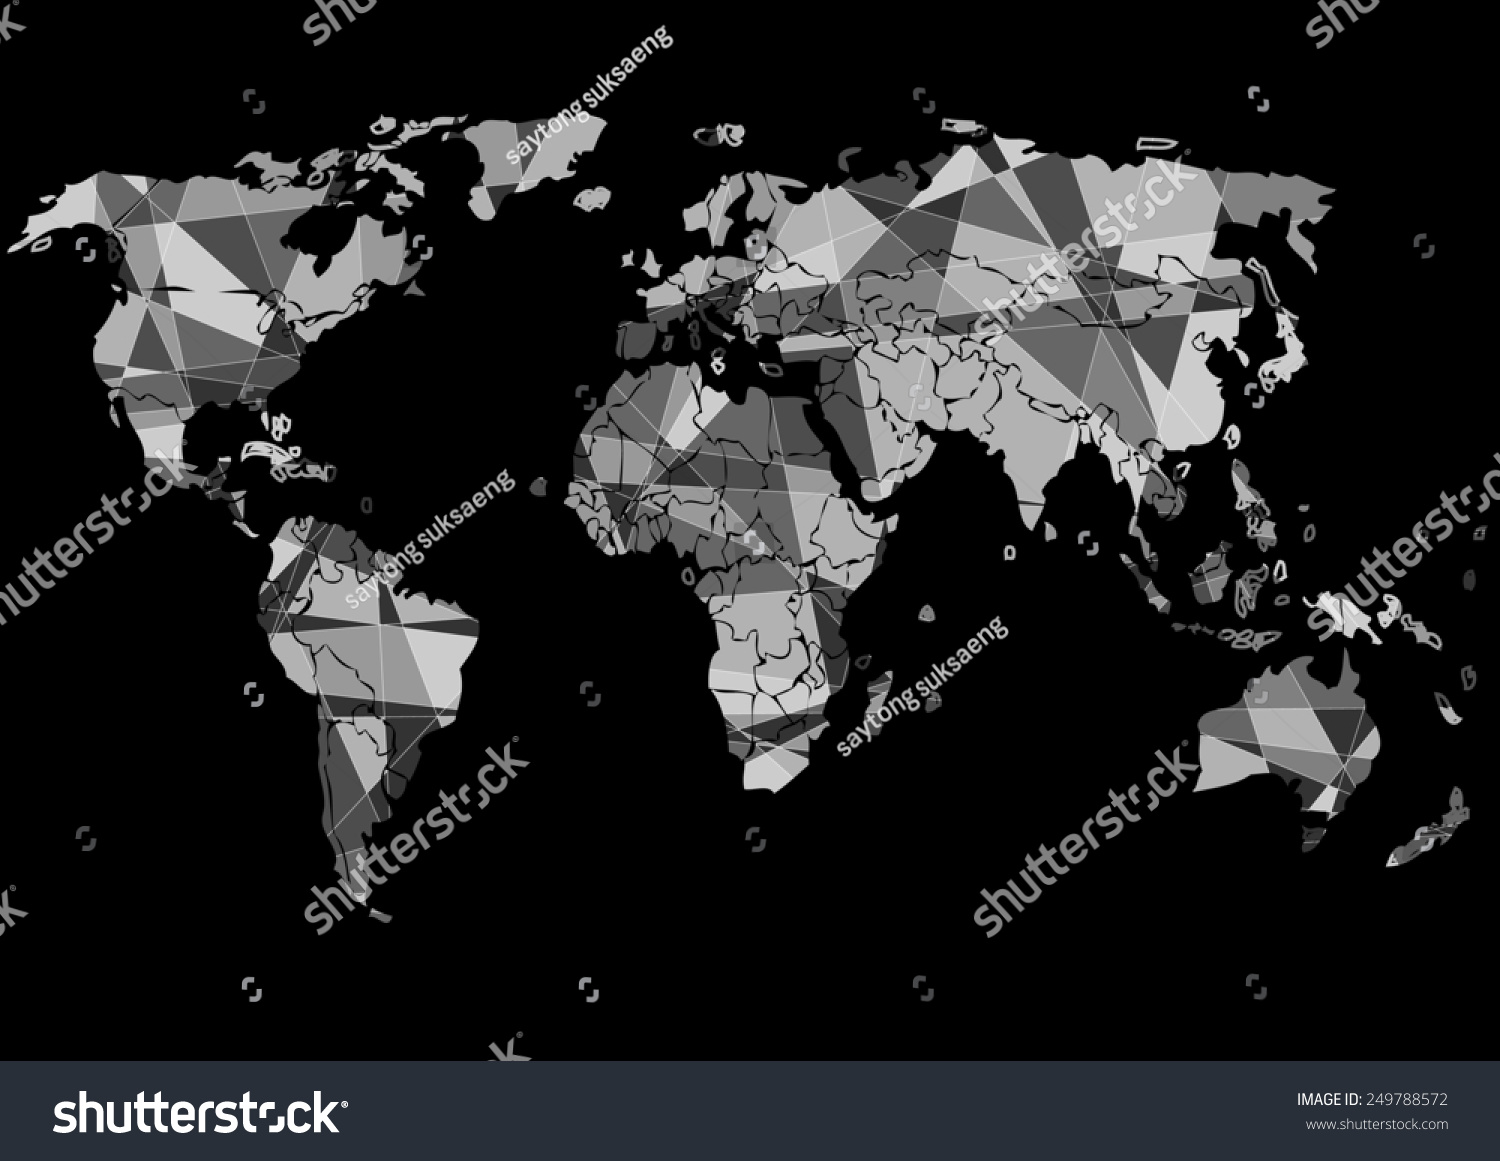 Drawing world map vector graphics stock vector 2018 249788572 drawing the world map vector graphics gumiabroncs Images